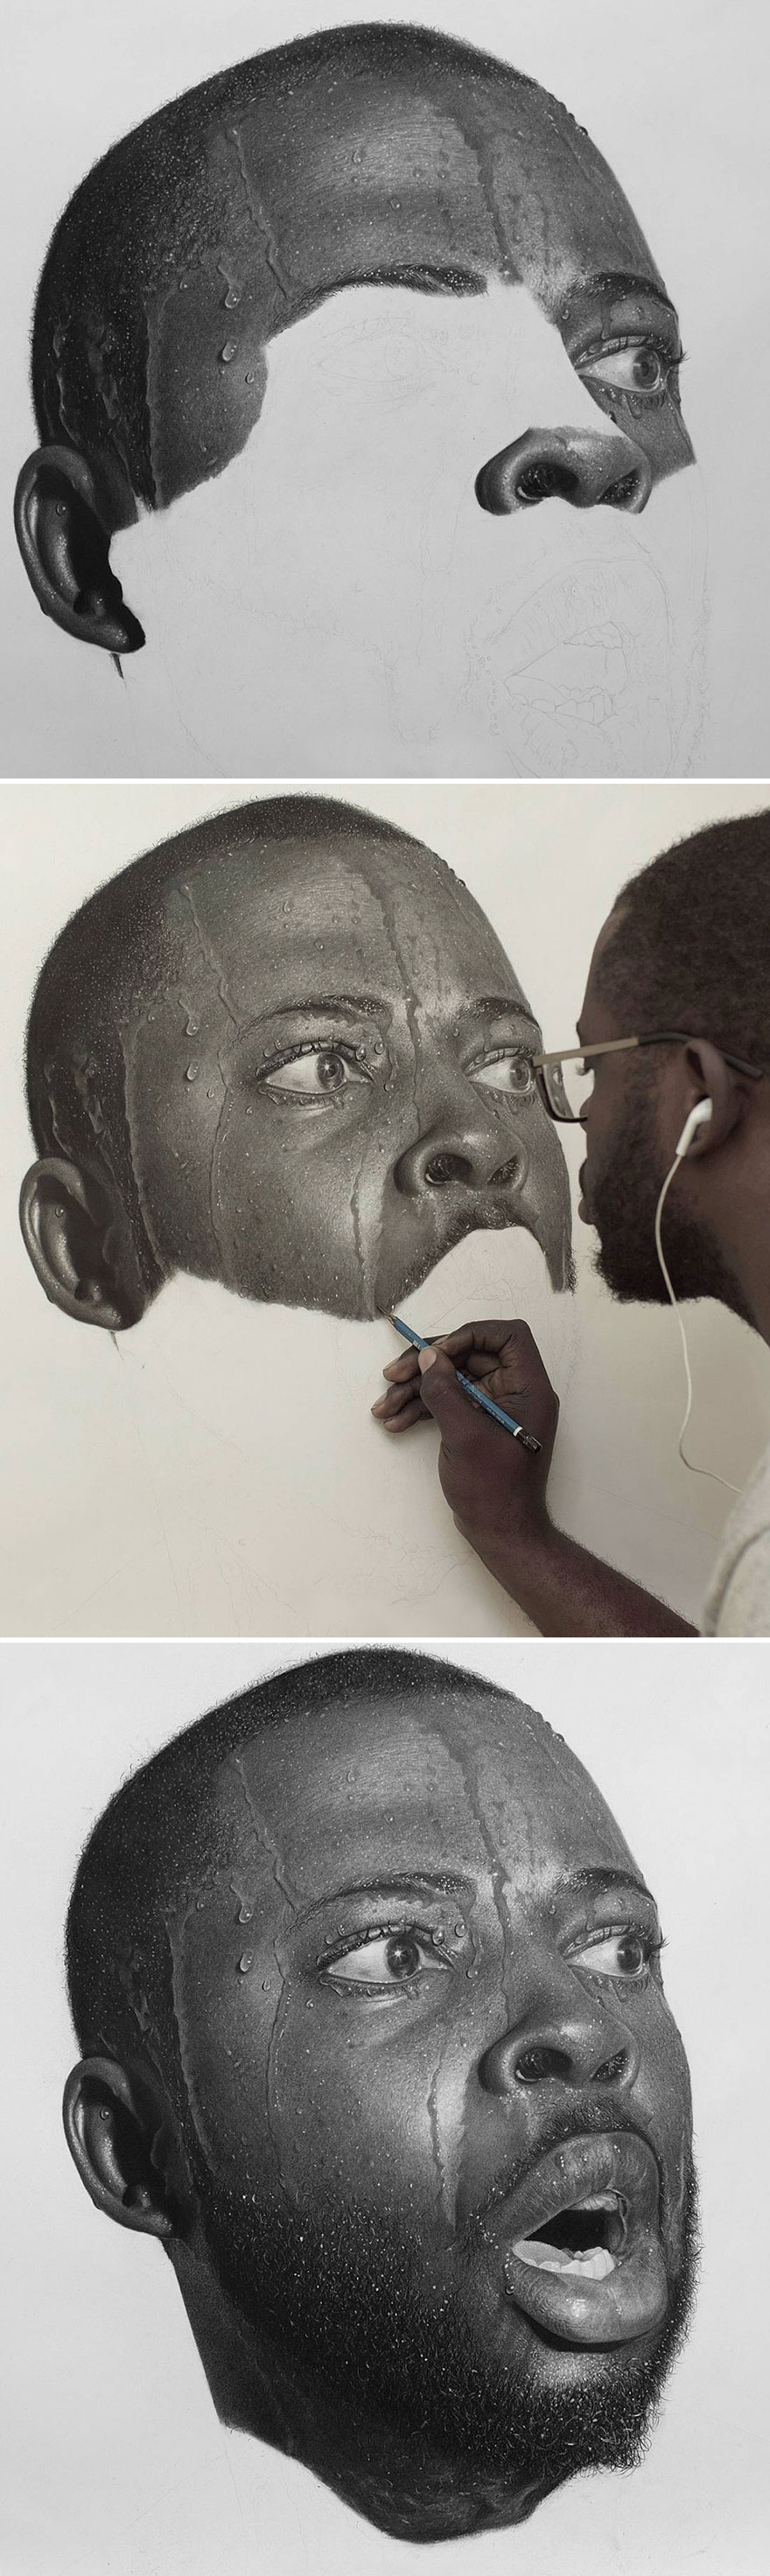 hyperrealism-pencil-portraits-arinze-stanley-6-58d28c11a9a9d__880-2